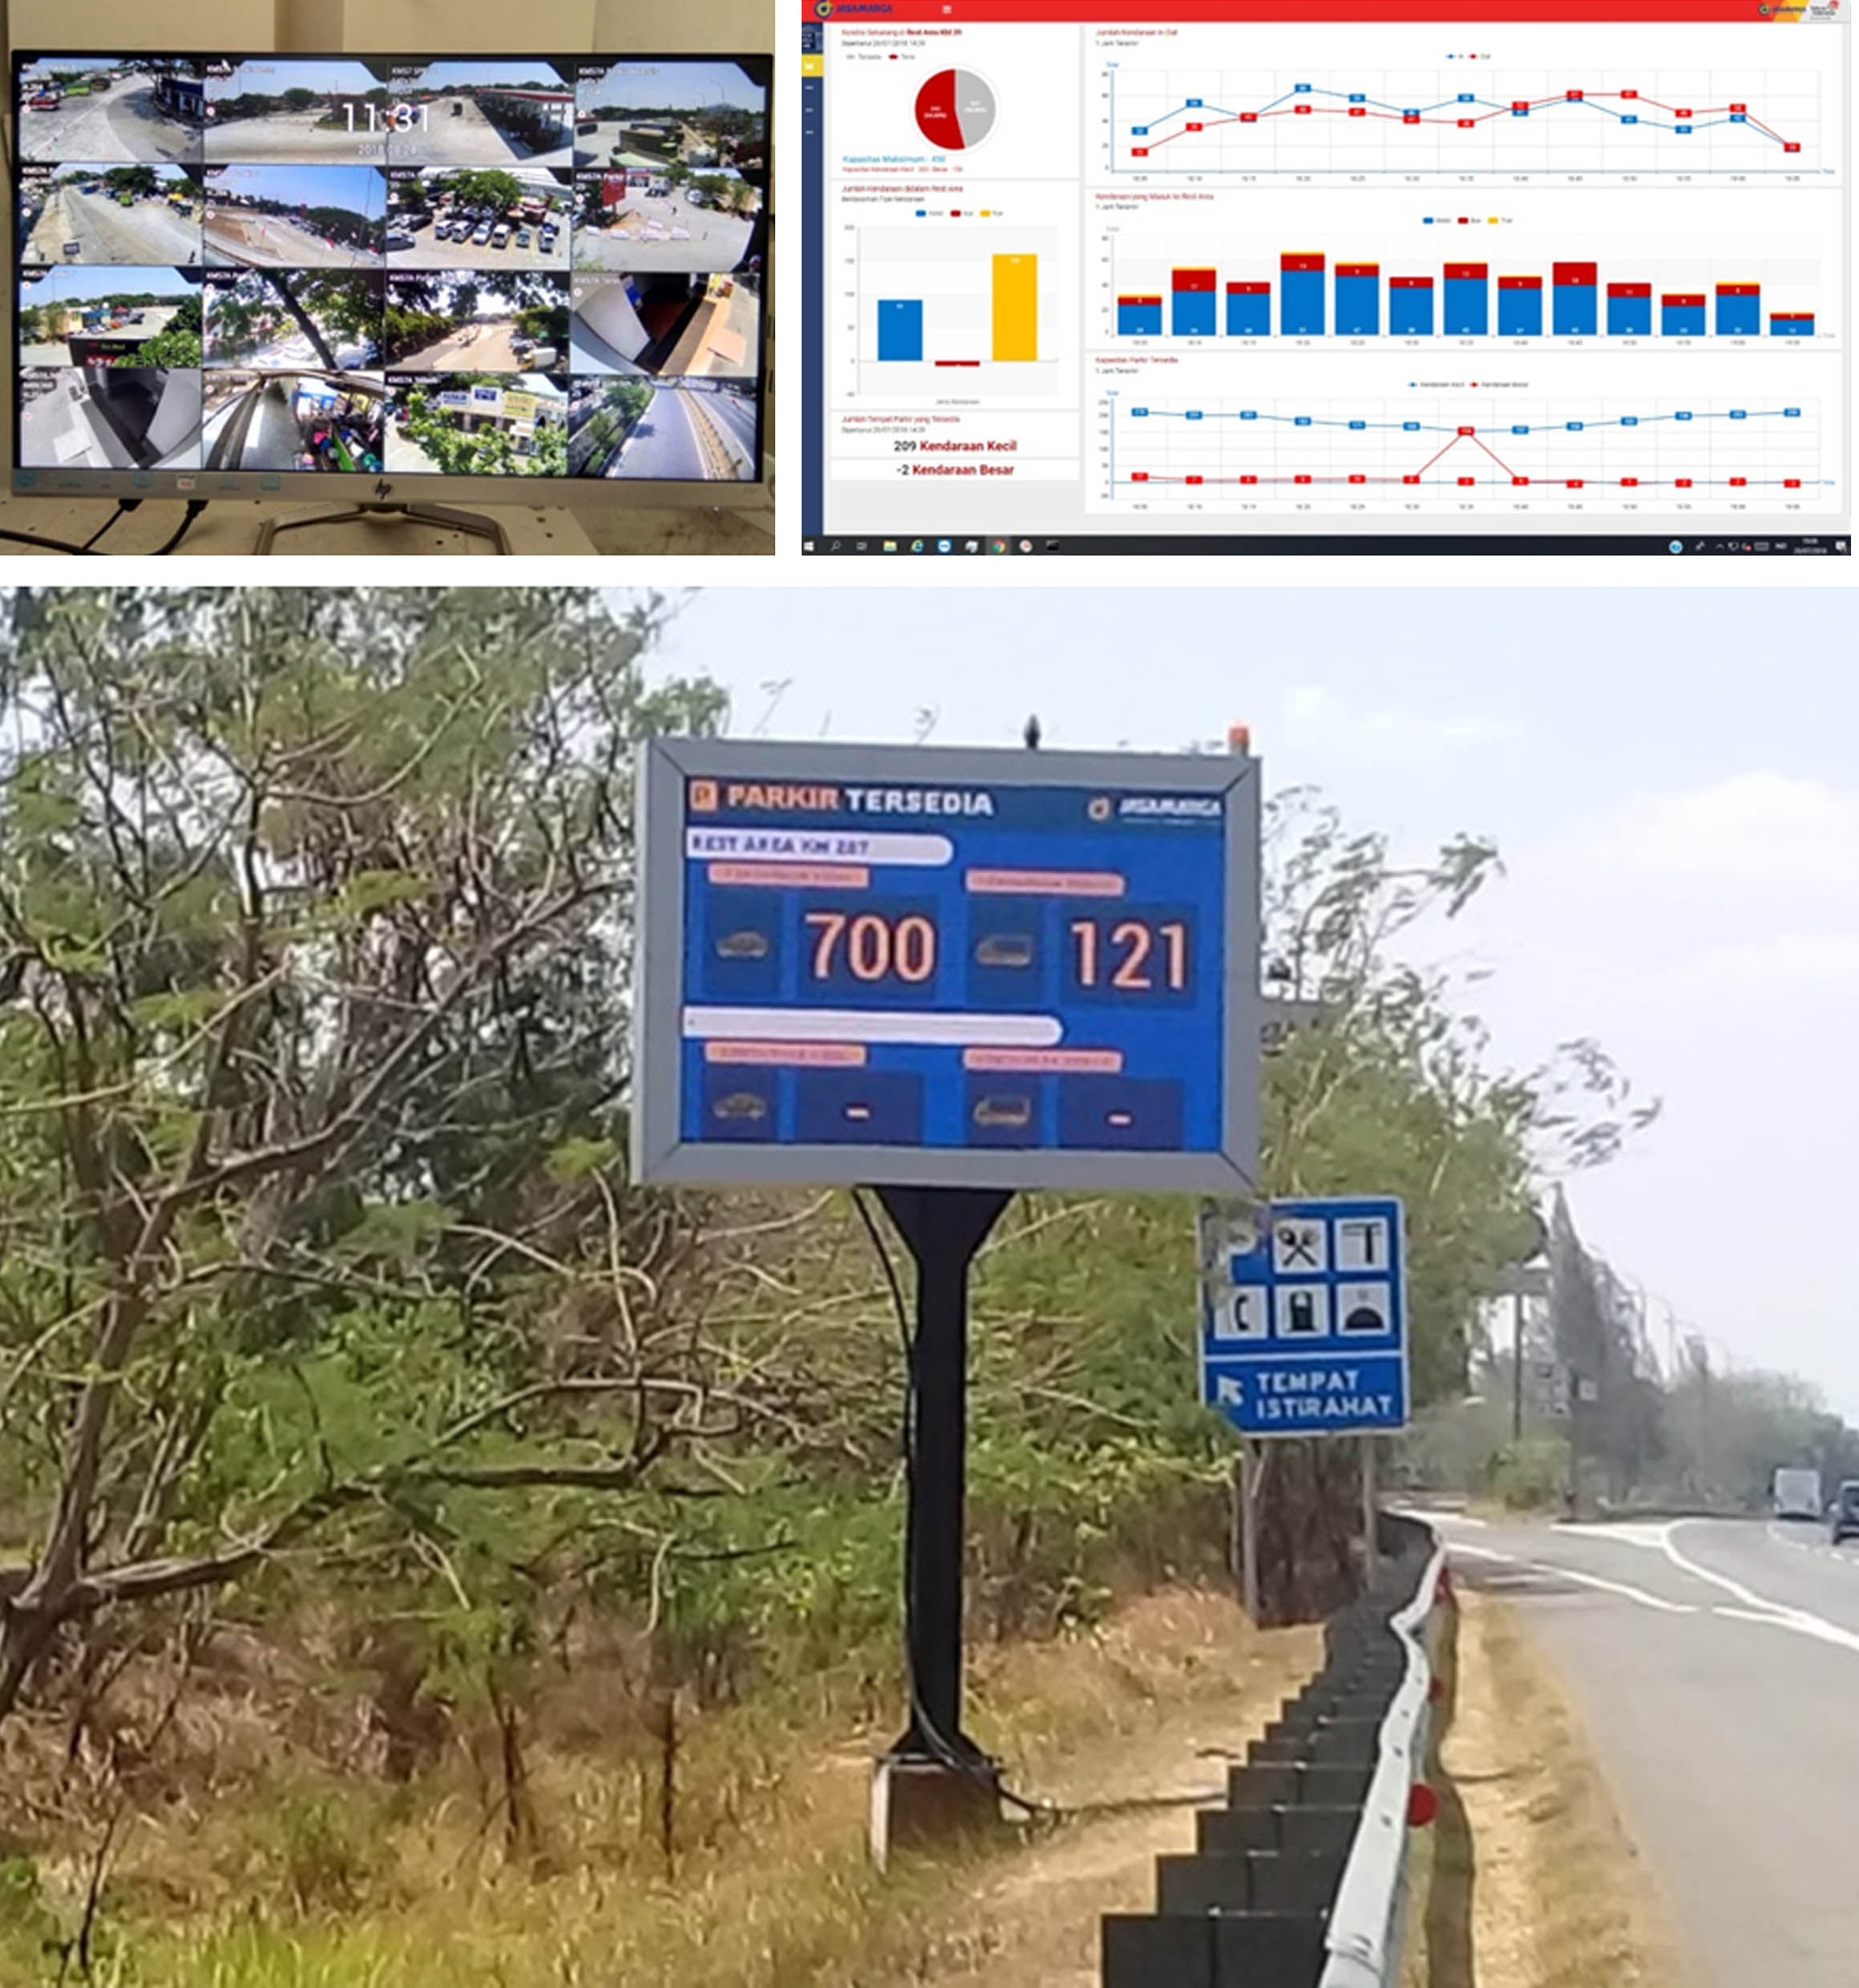 Rest Area Monitoring System (RAMS)